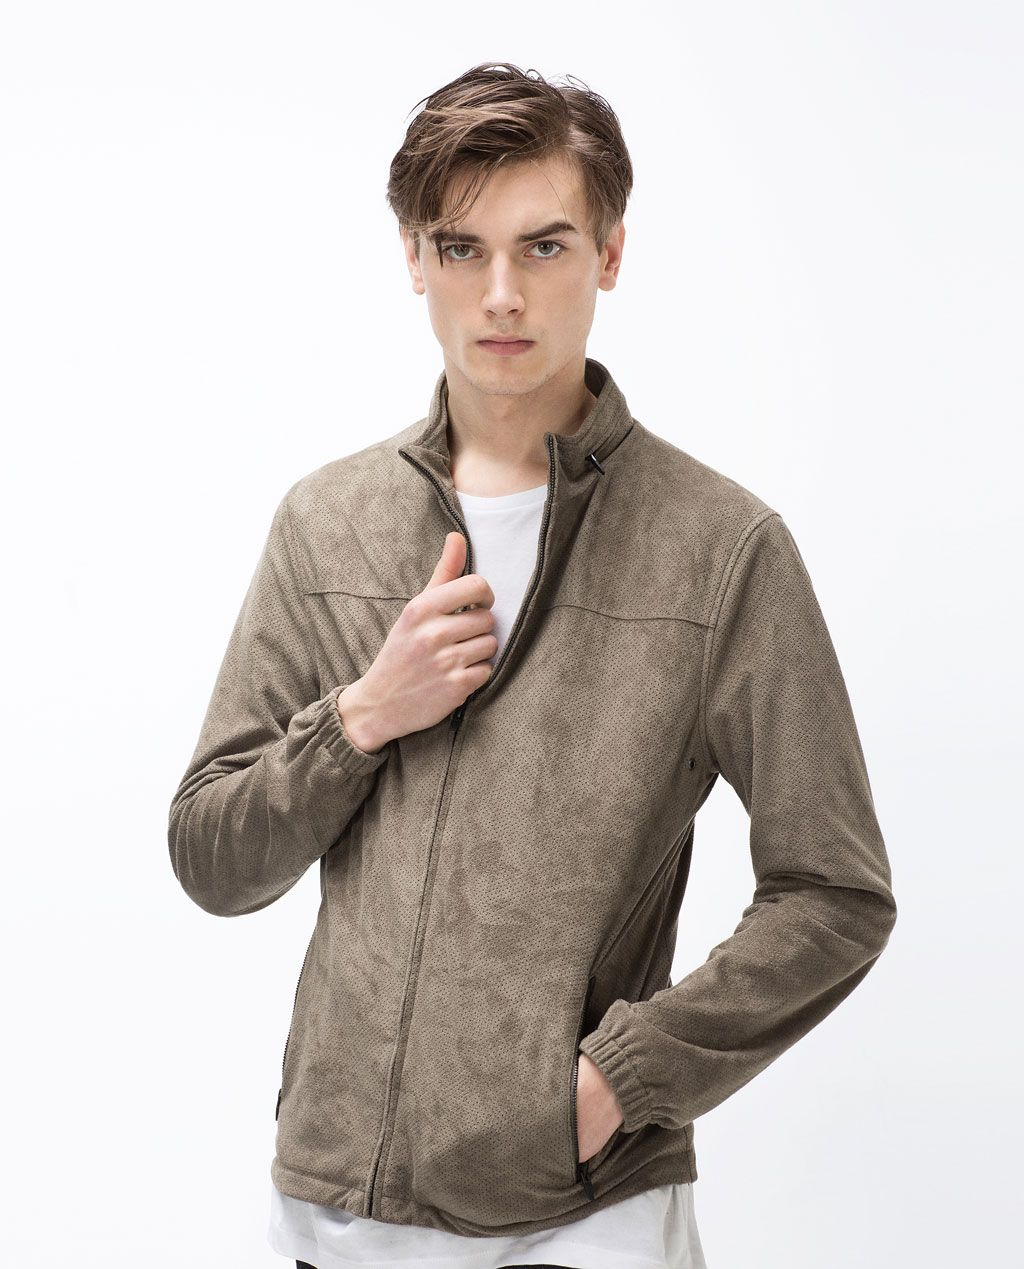 Perforated Faux Suede Jacket Jackets Man Promotions Faux Suede Jacket Mens Jackets Men Sweater